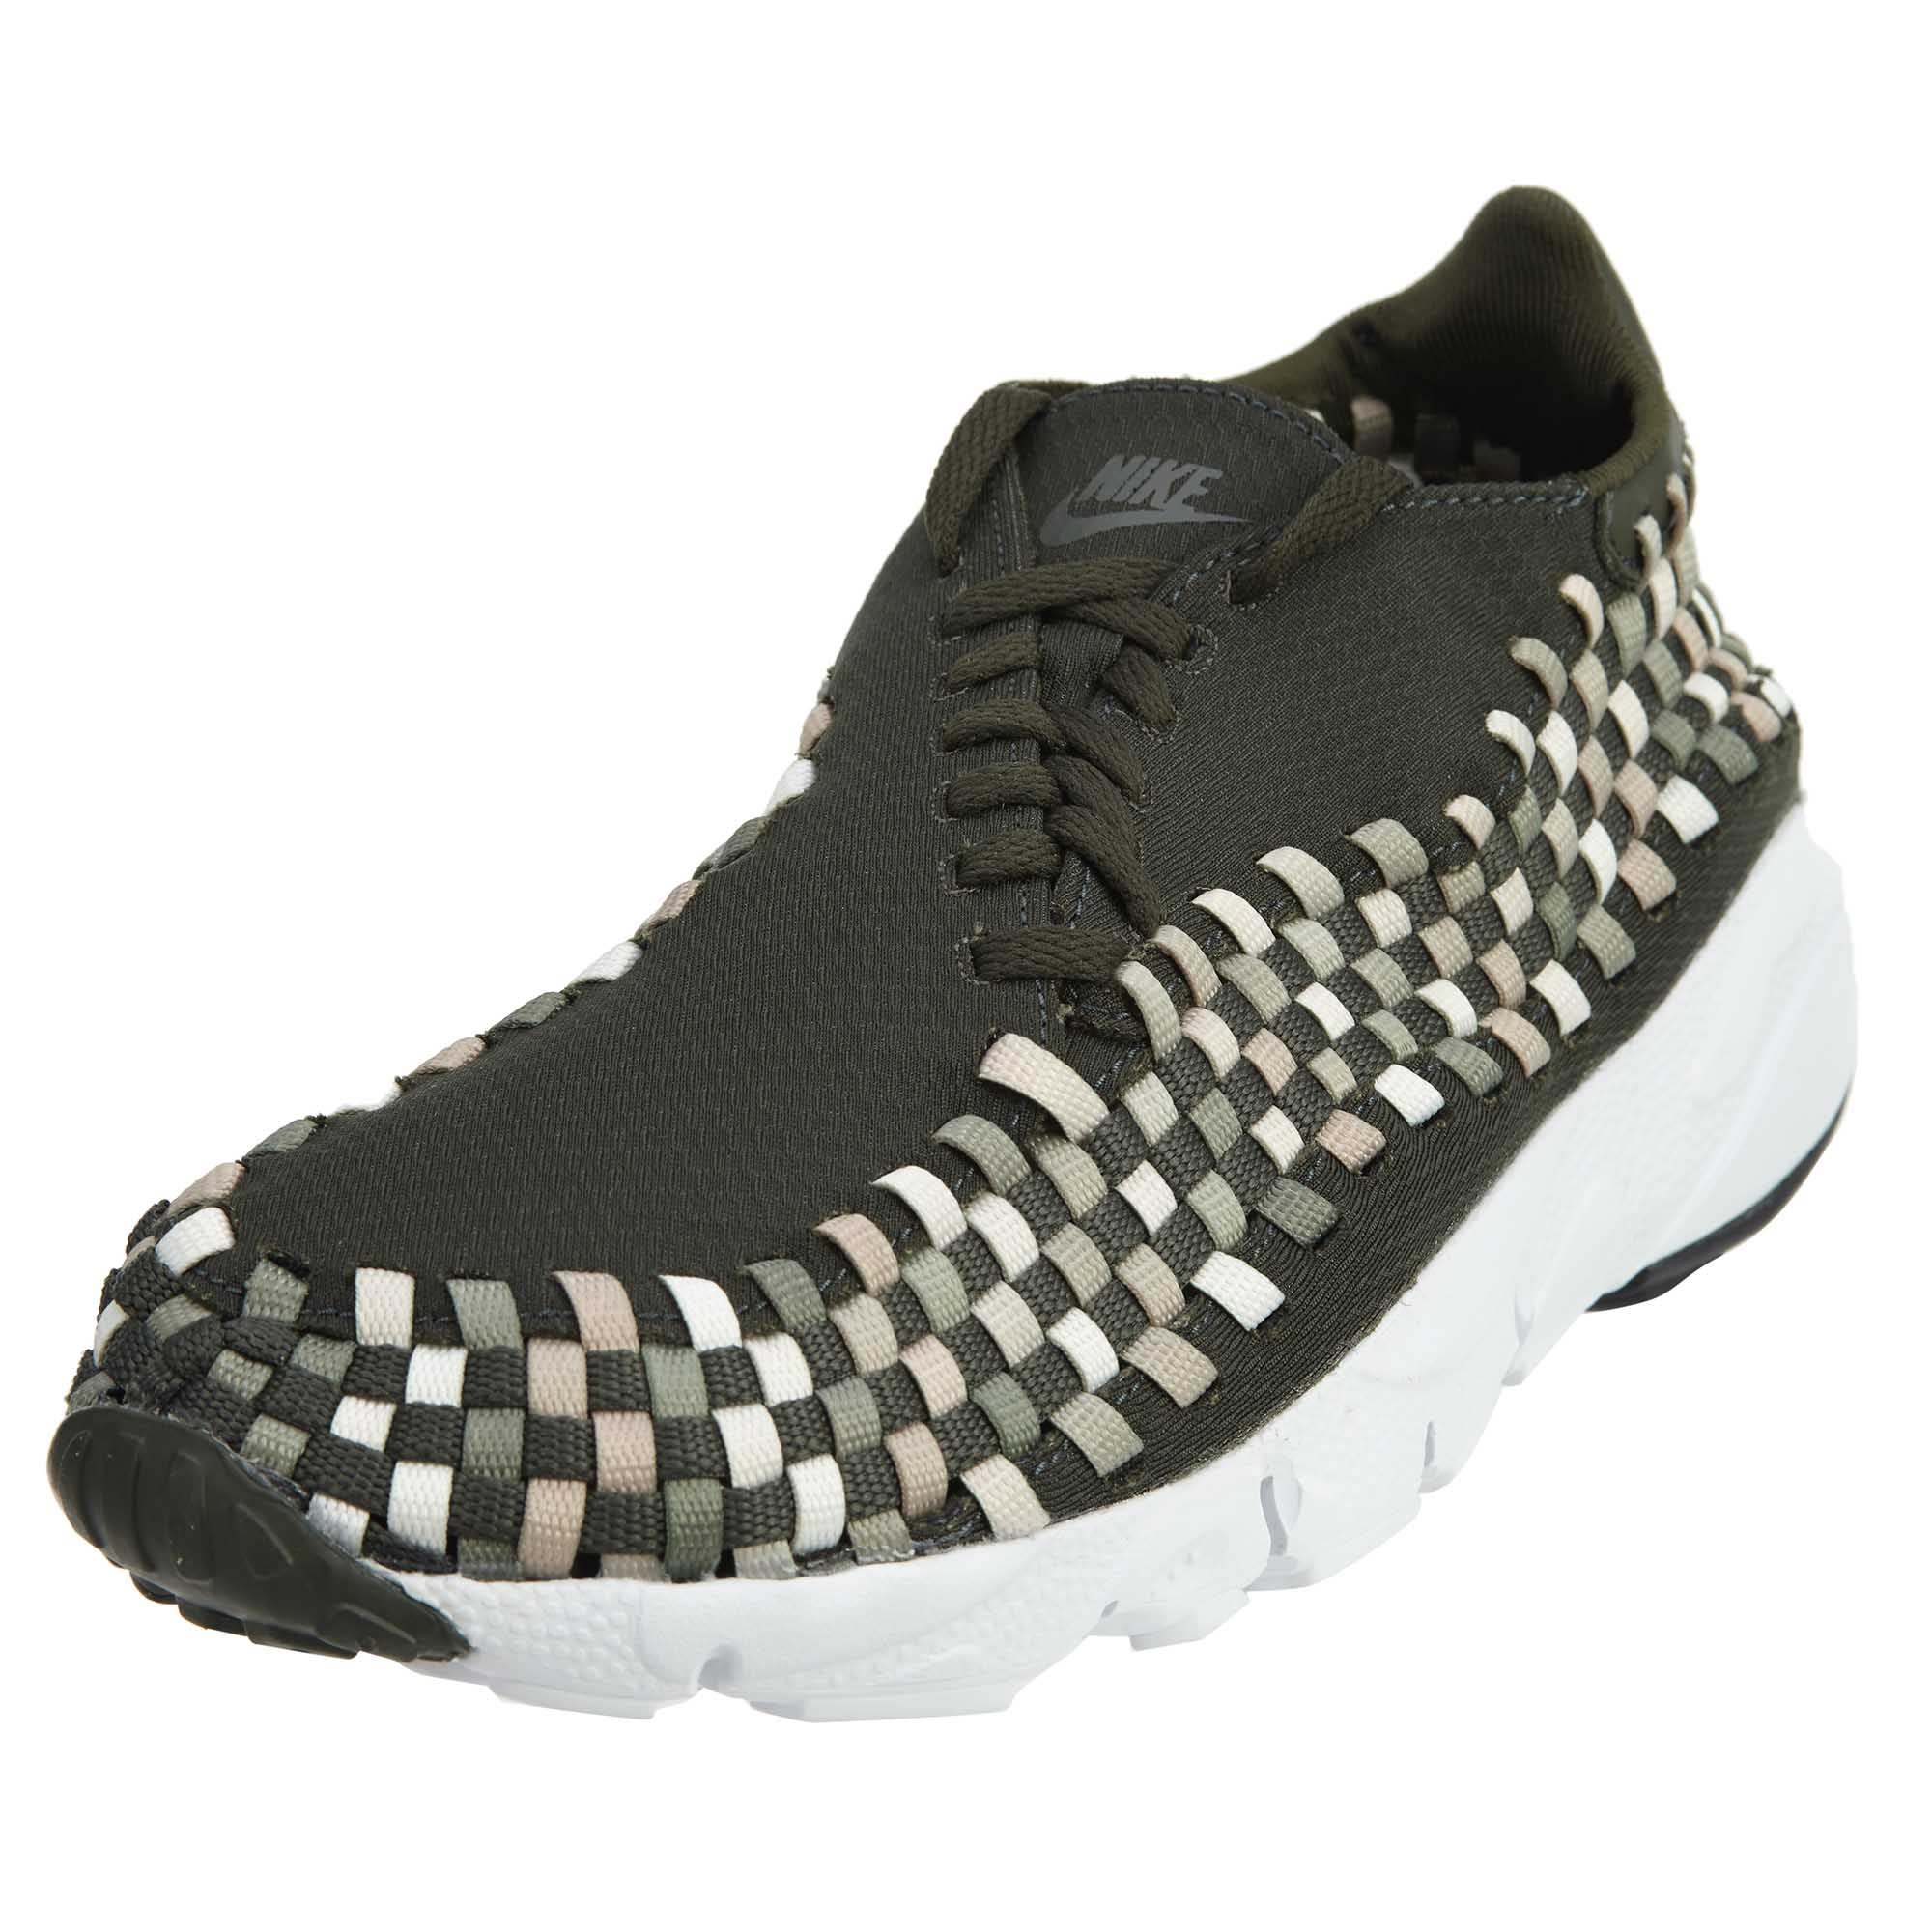 the best attitude e0d62 26f36 Details about Nike Mens Air Footscape Woven NM Shoes 875797-300